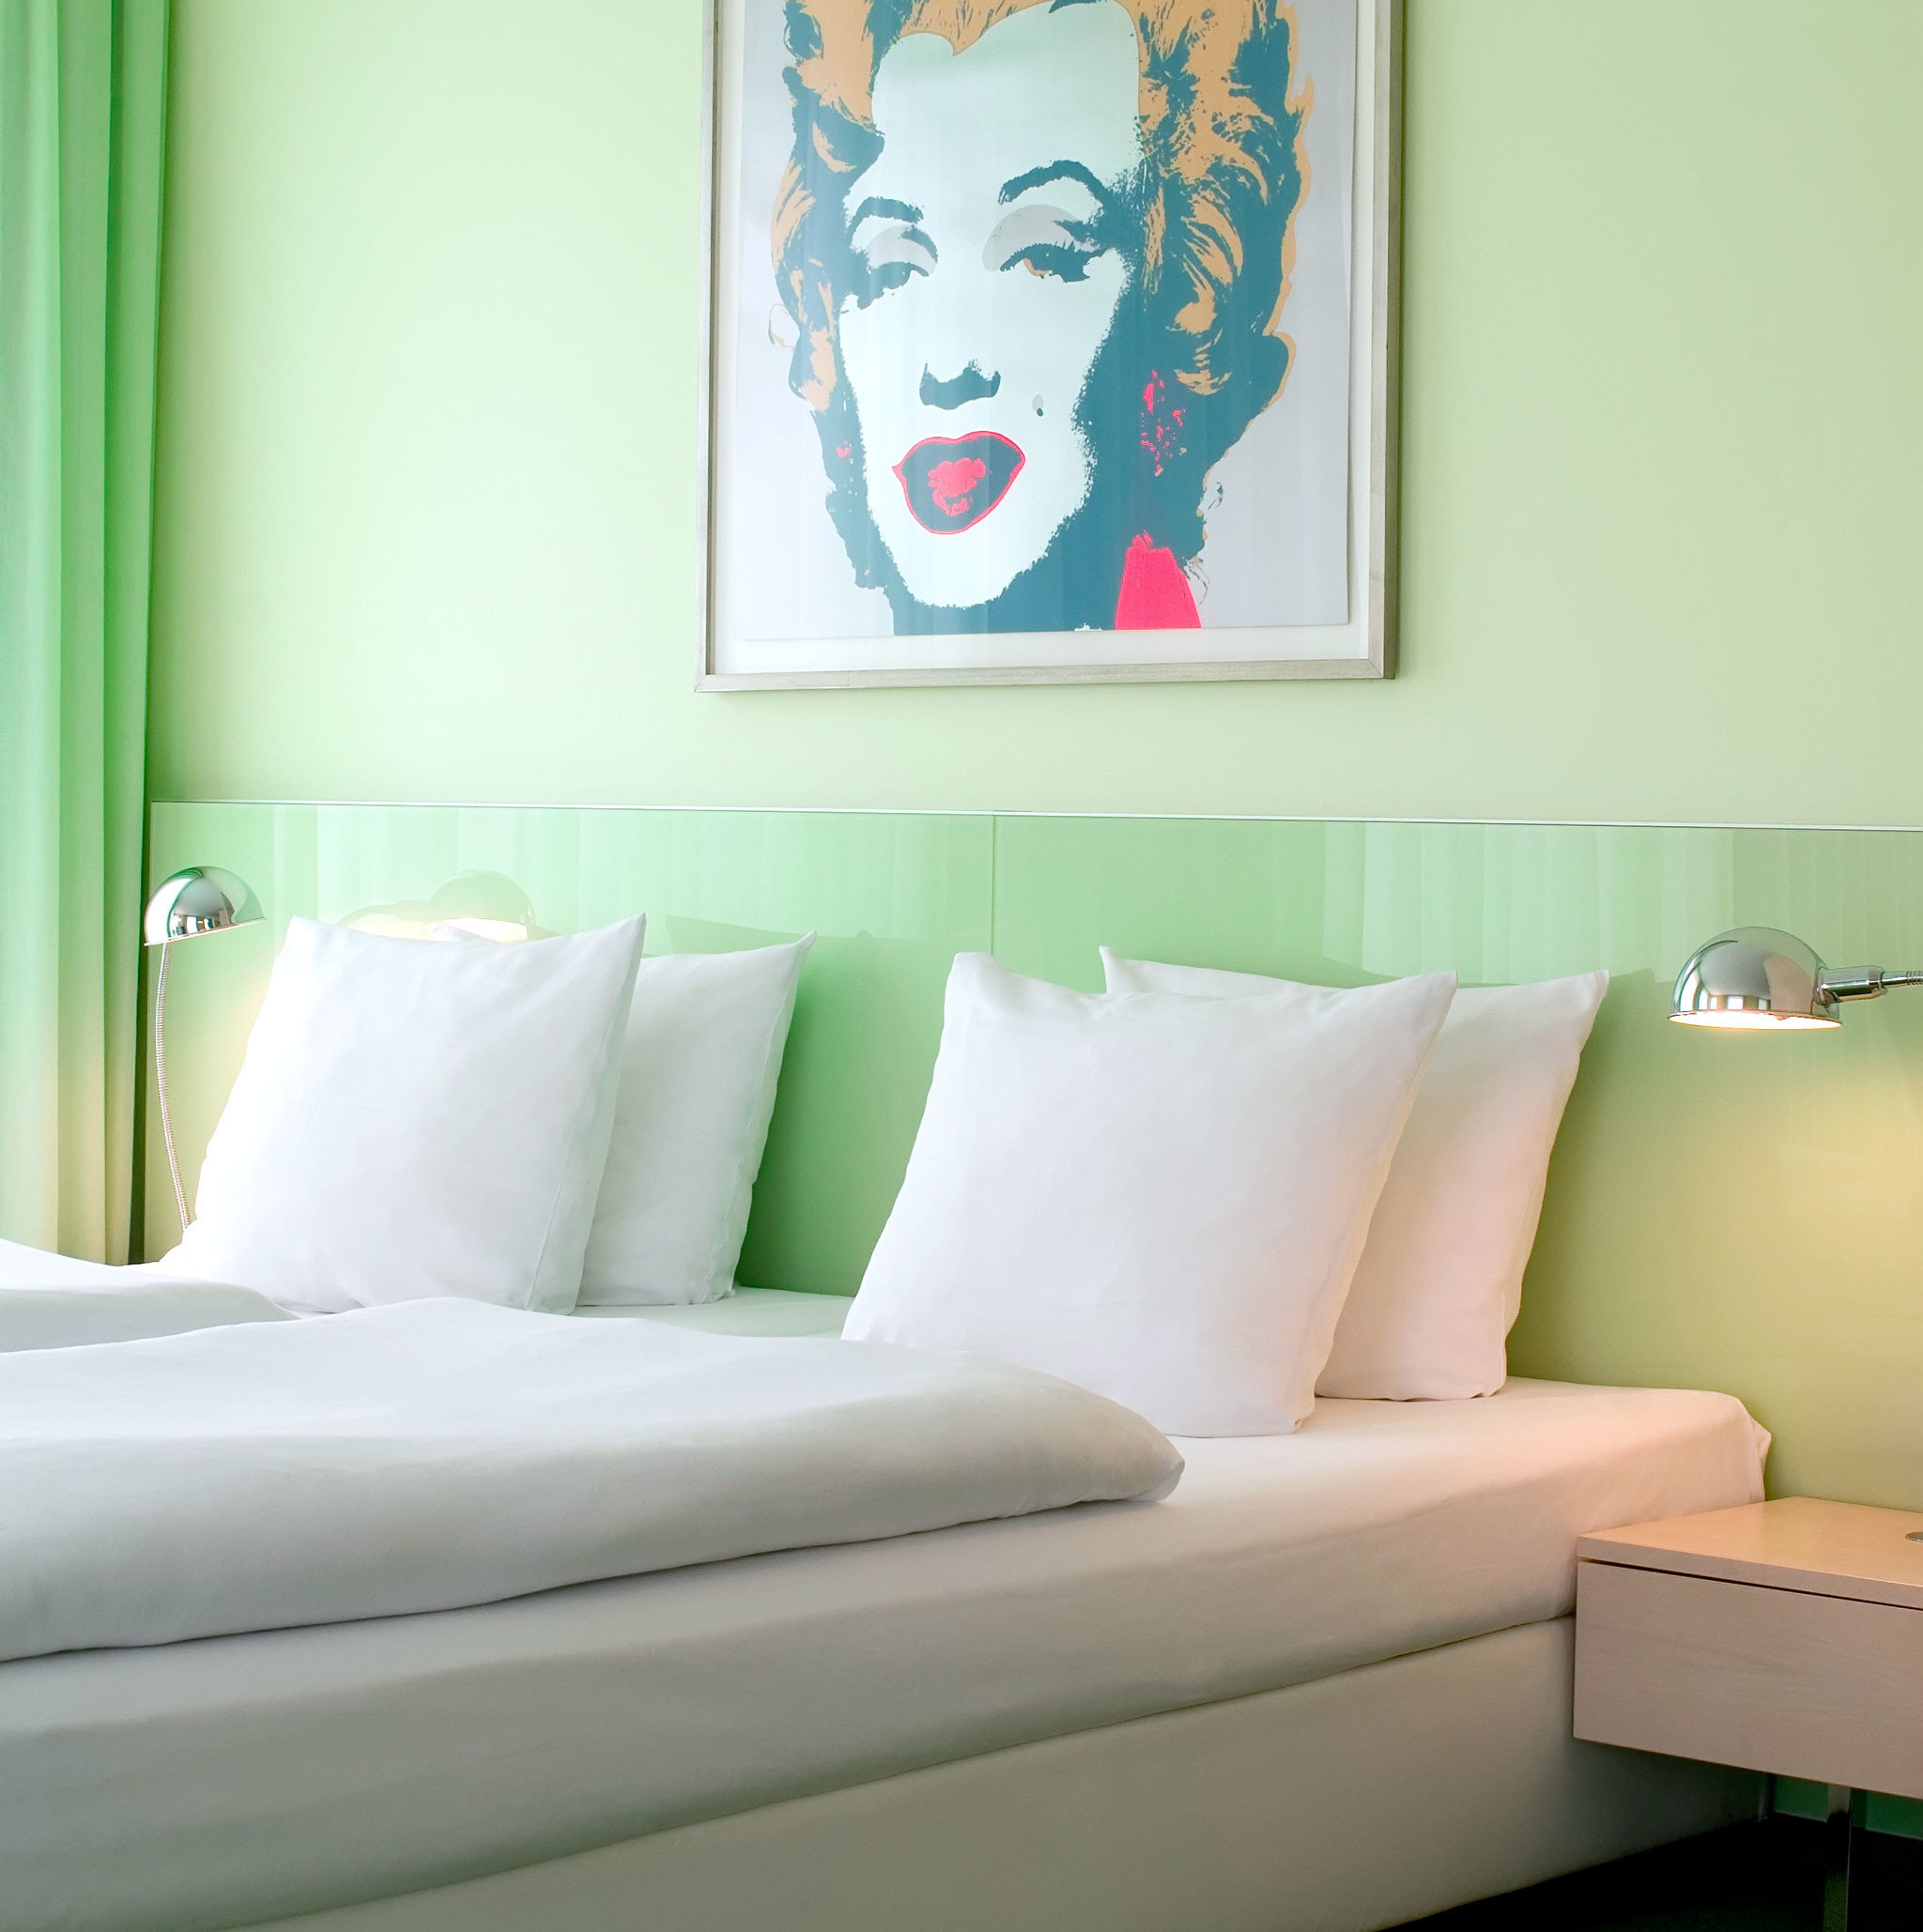 Bedroom City Hip Modern sofa green color white pillow modern art living room seat art colored